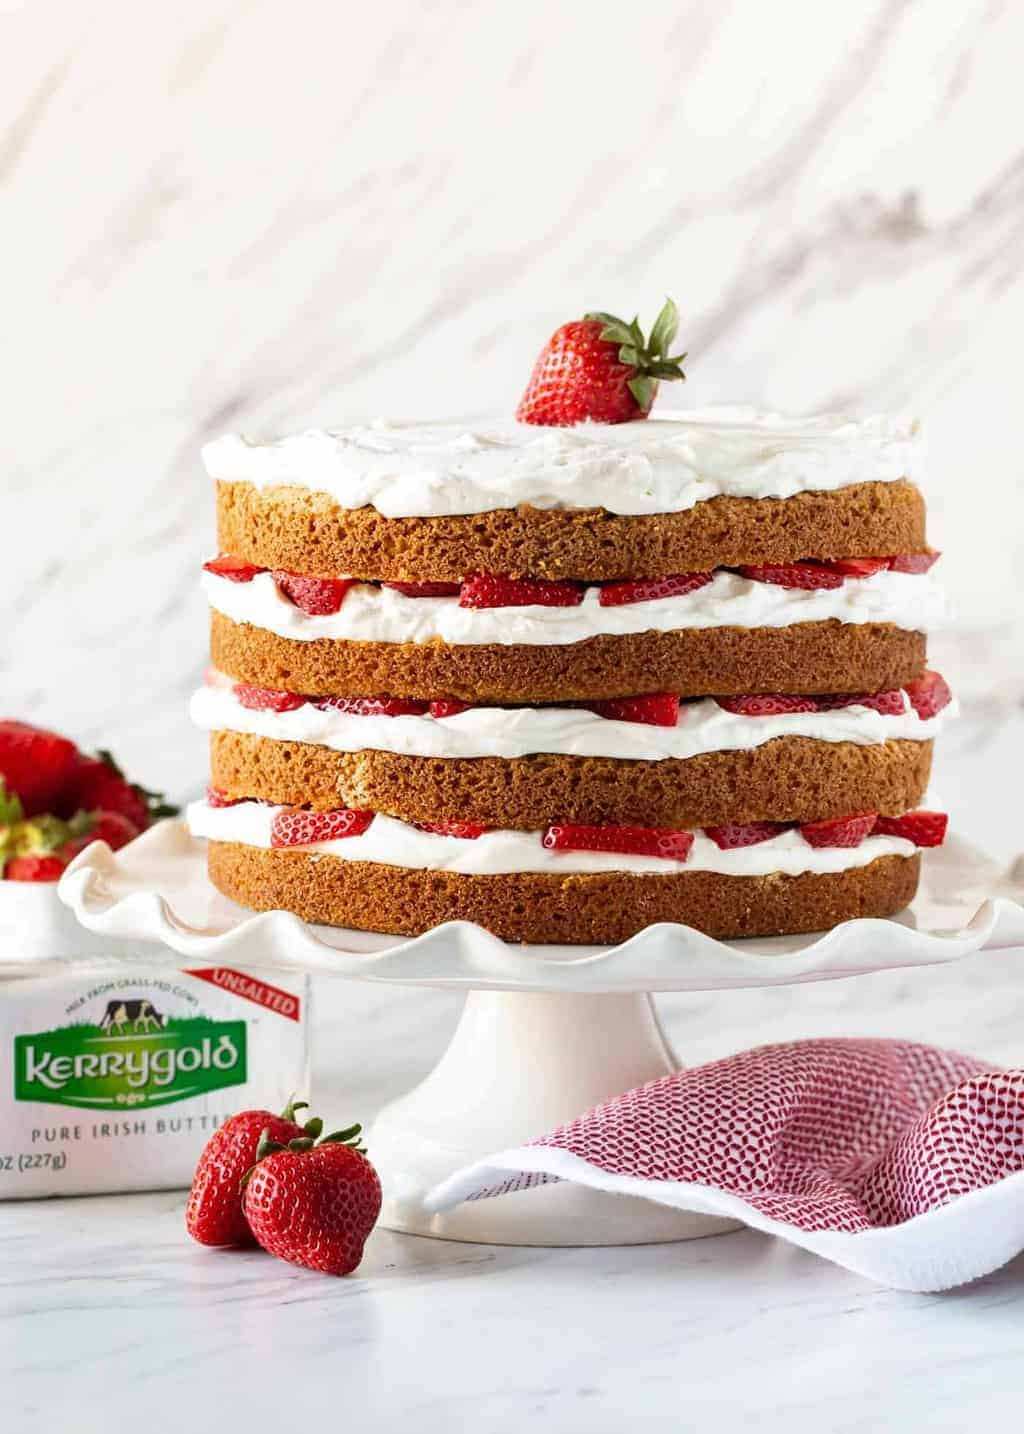 Strawberry Layer Cake filled with fresh whipped cream frosting and fresh strawberries on a white cake stand.